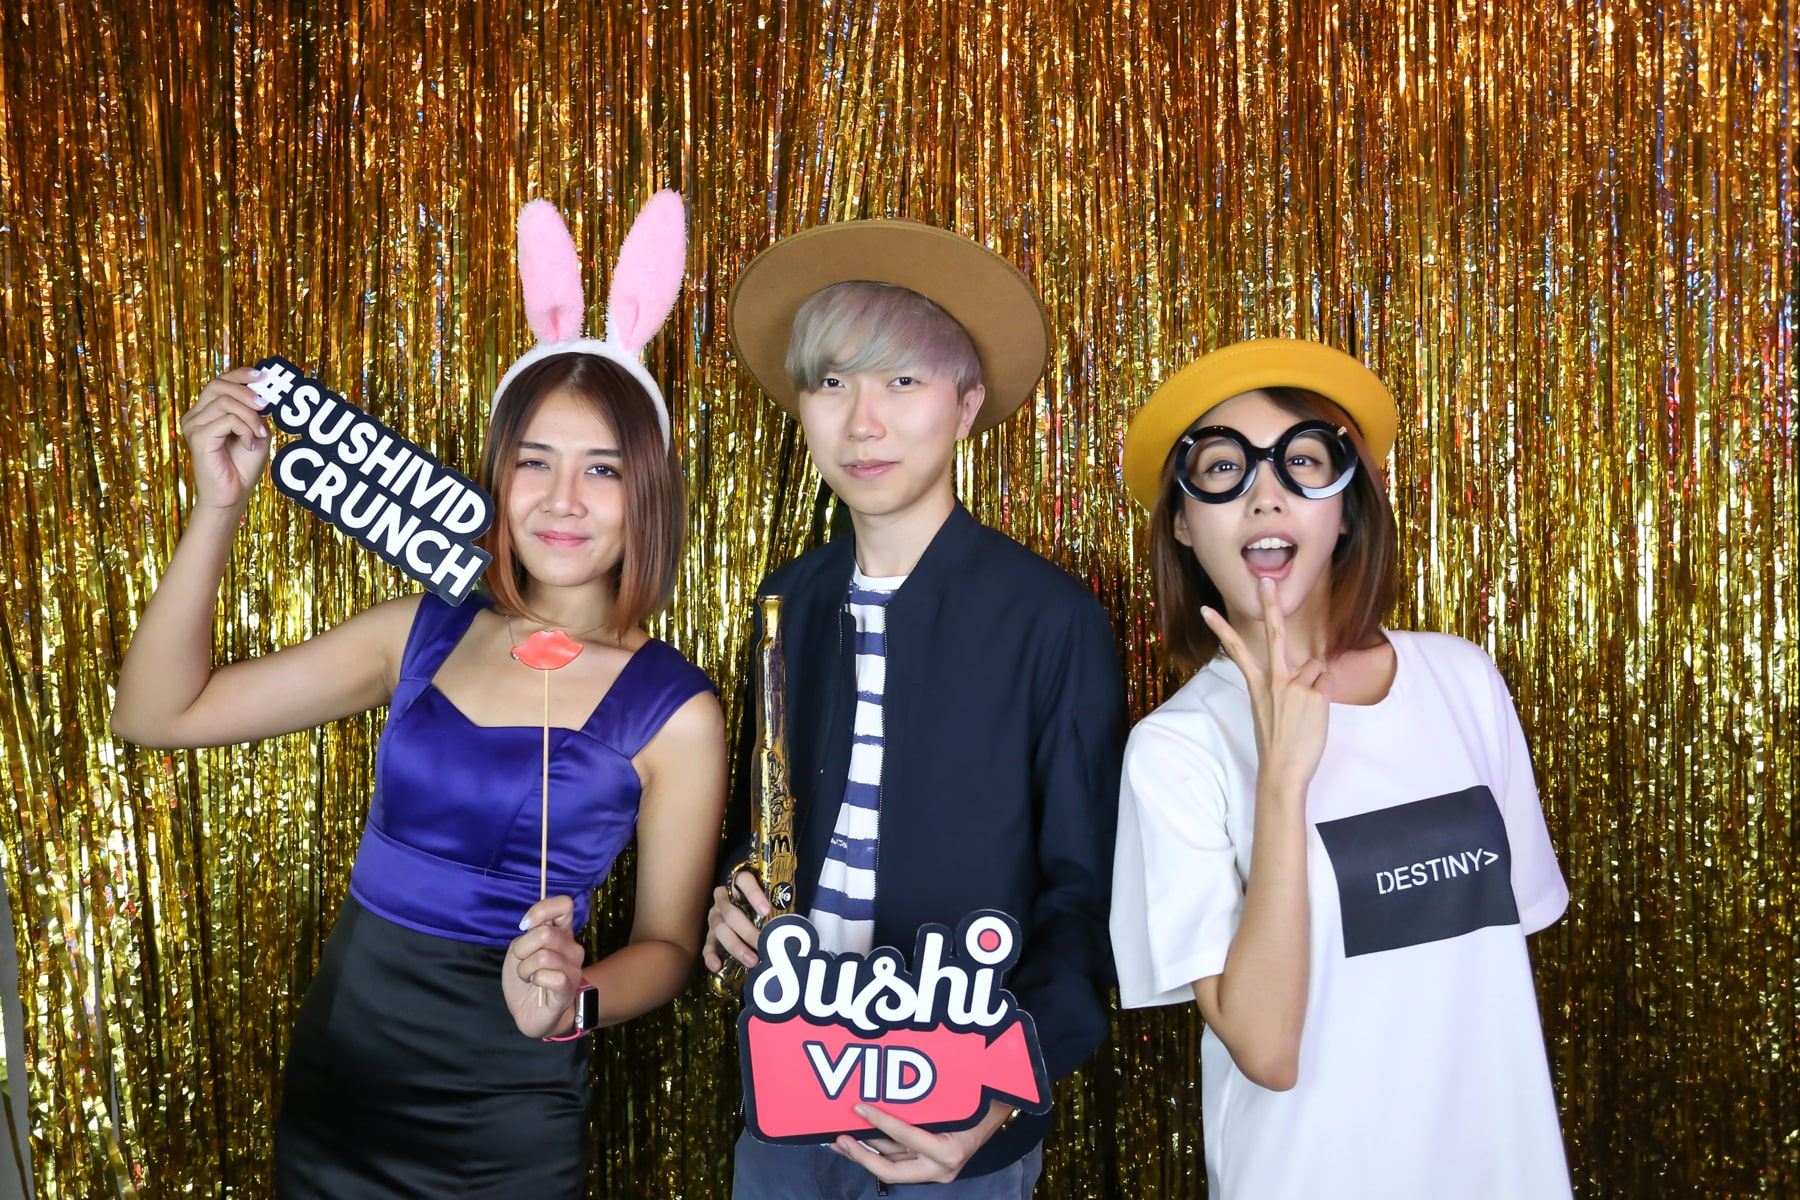 Sushivid+crunch+tagbooth+123